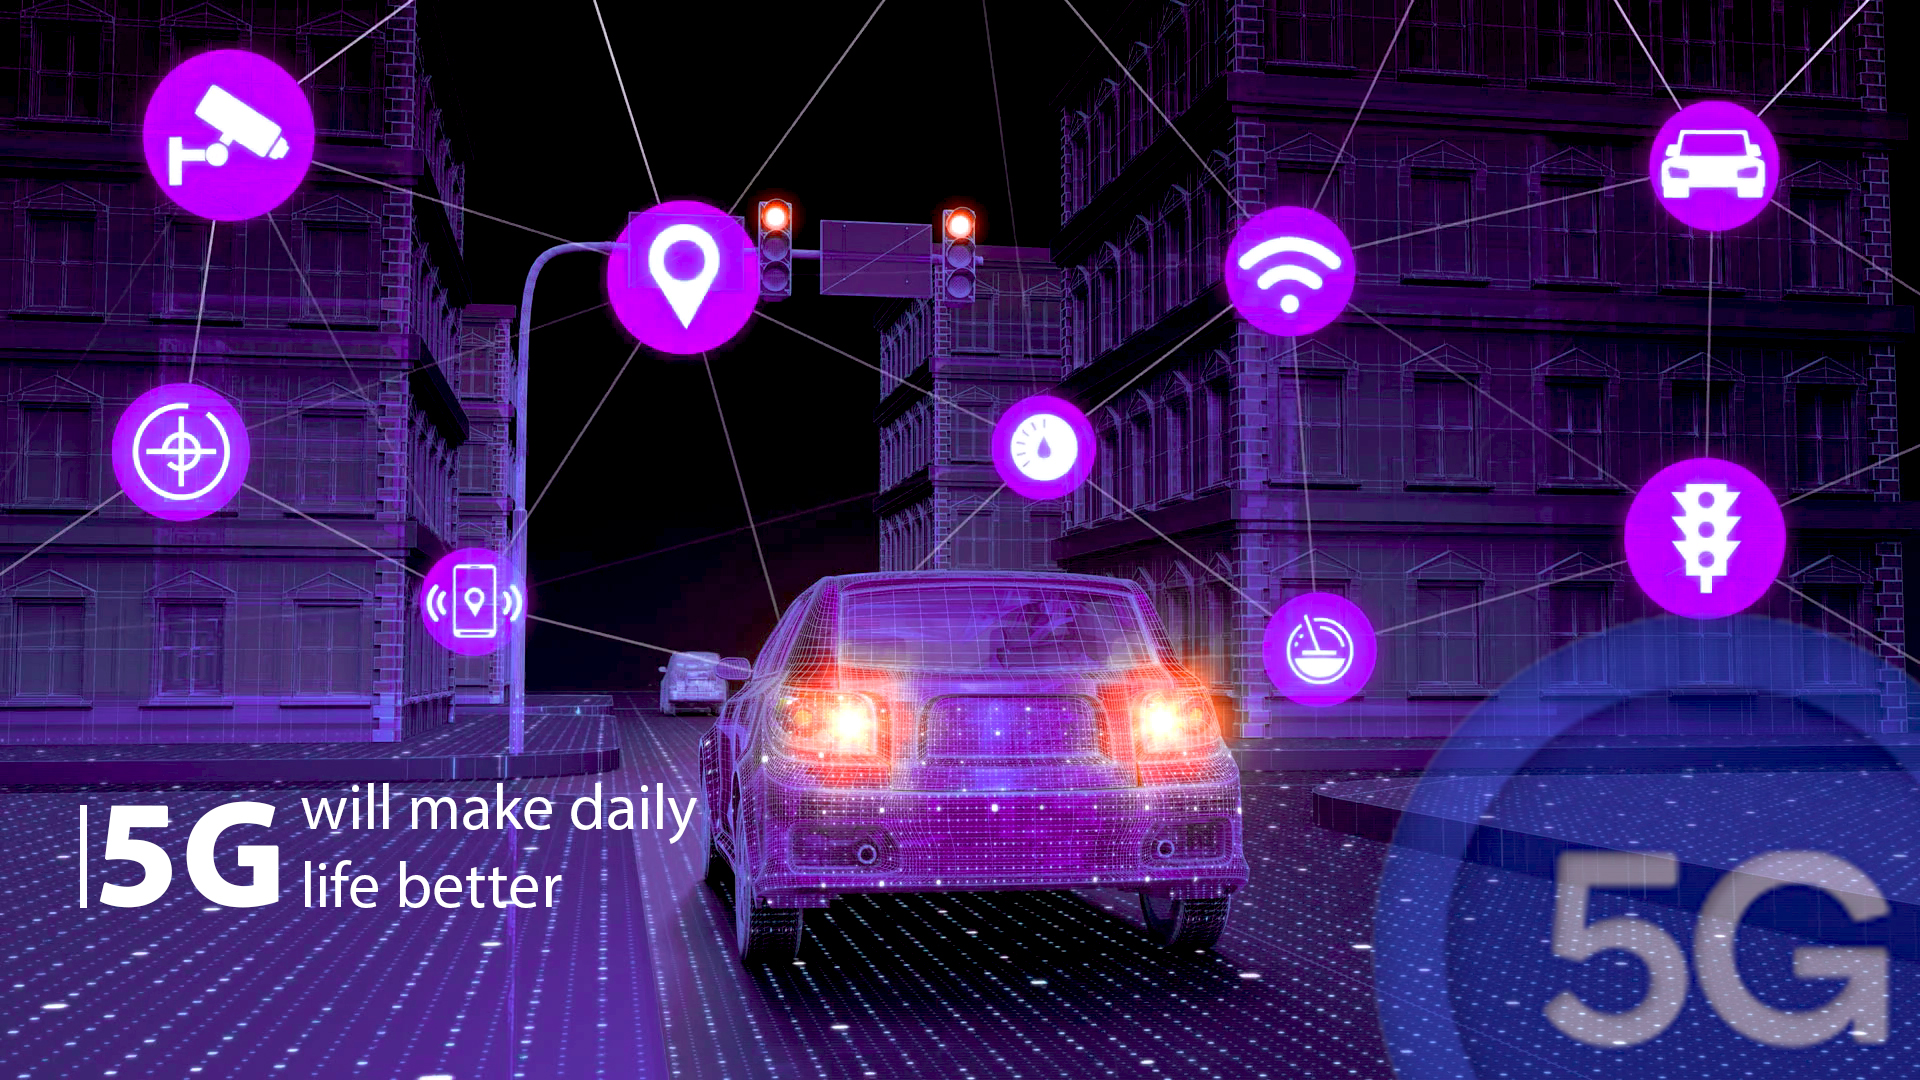 Positive Impact of the 5G Network in Daily Routine Life